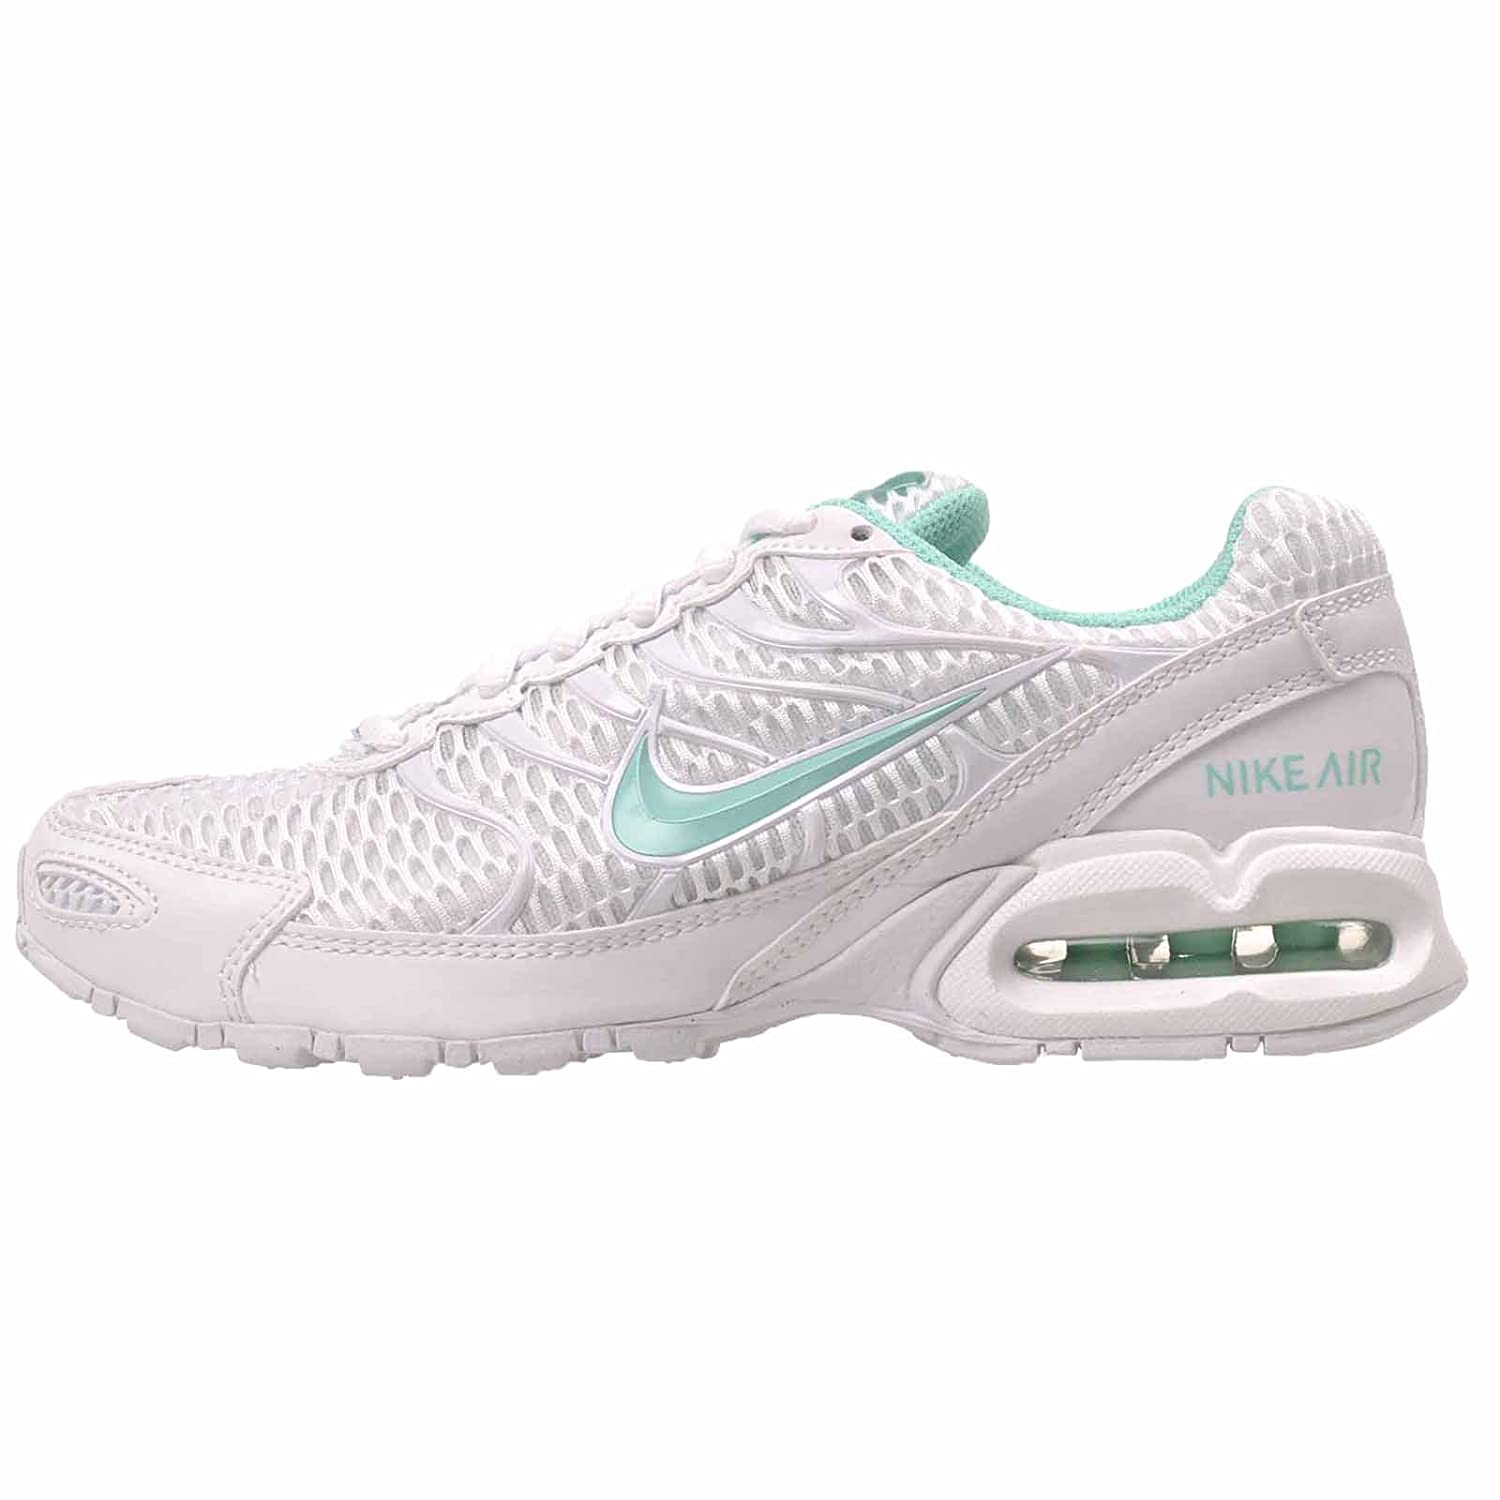 NIKE Women's Air Max Torch 4 Running Shoe B074HX817H 9.5 B(M) US|White/Hyper Turquoise